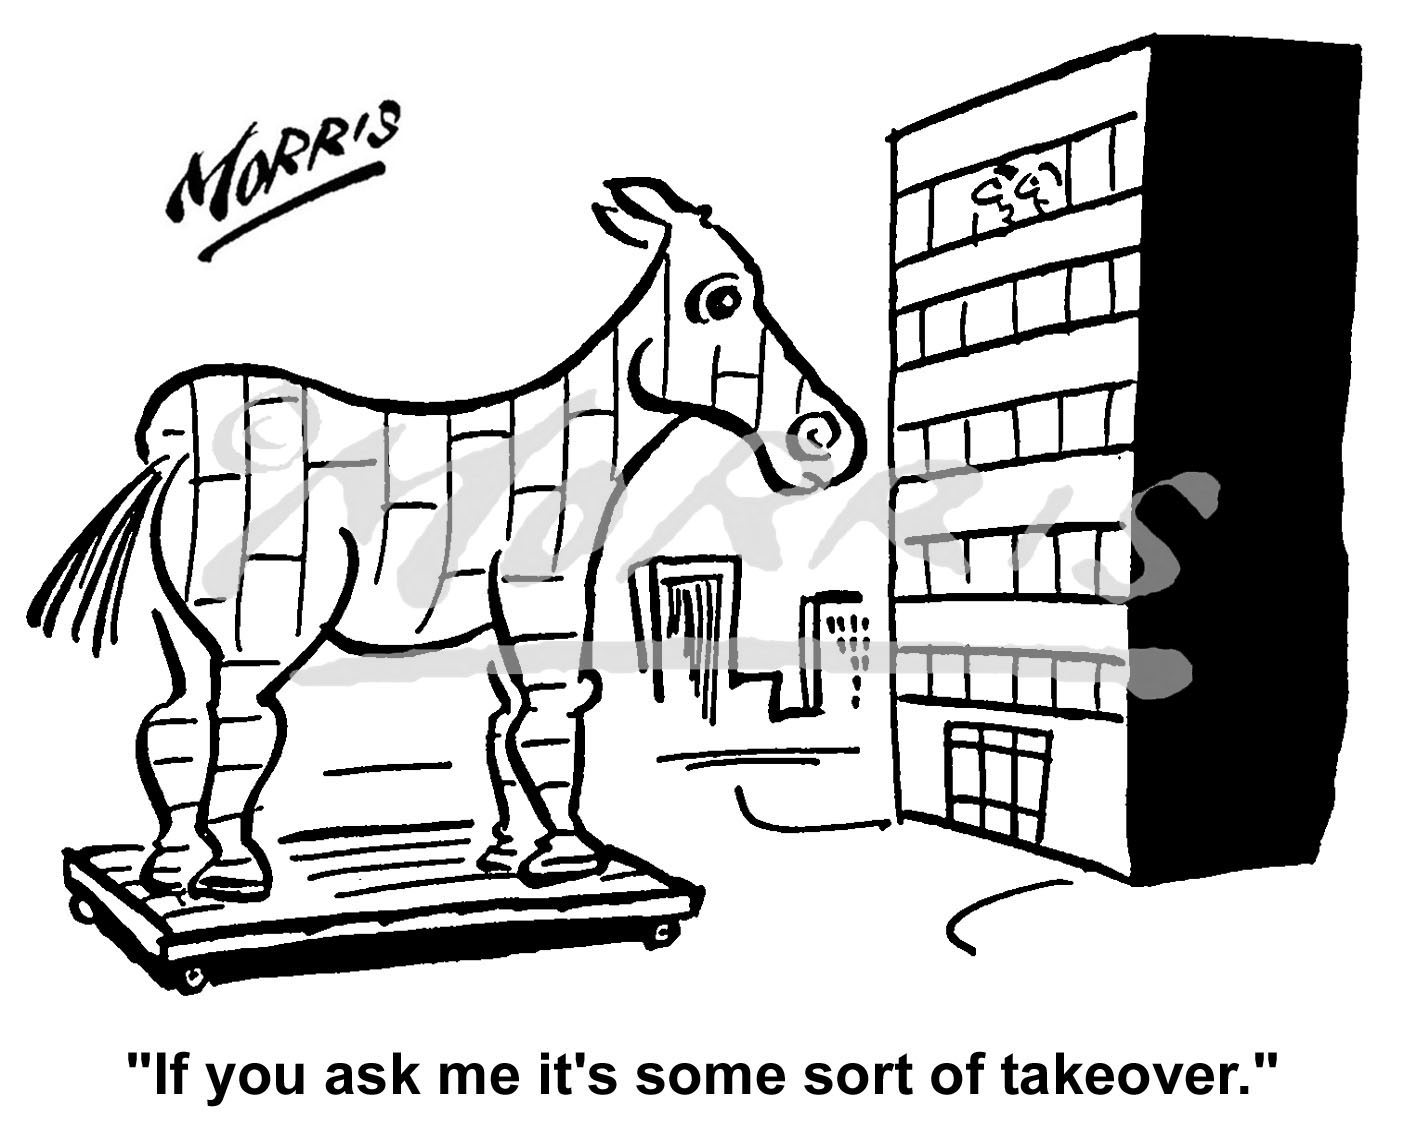 Boardroom takeover comic business cartoon Ref: 0602bw